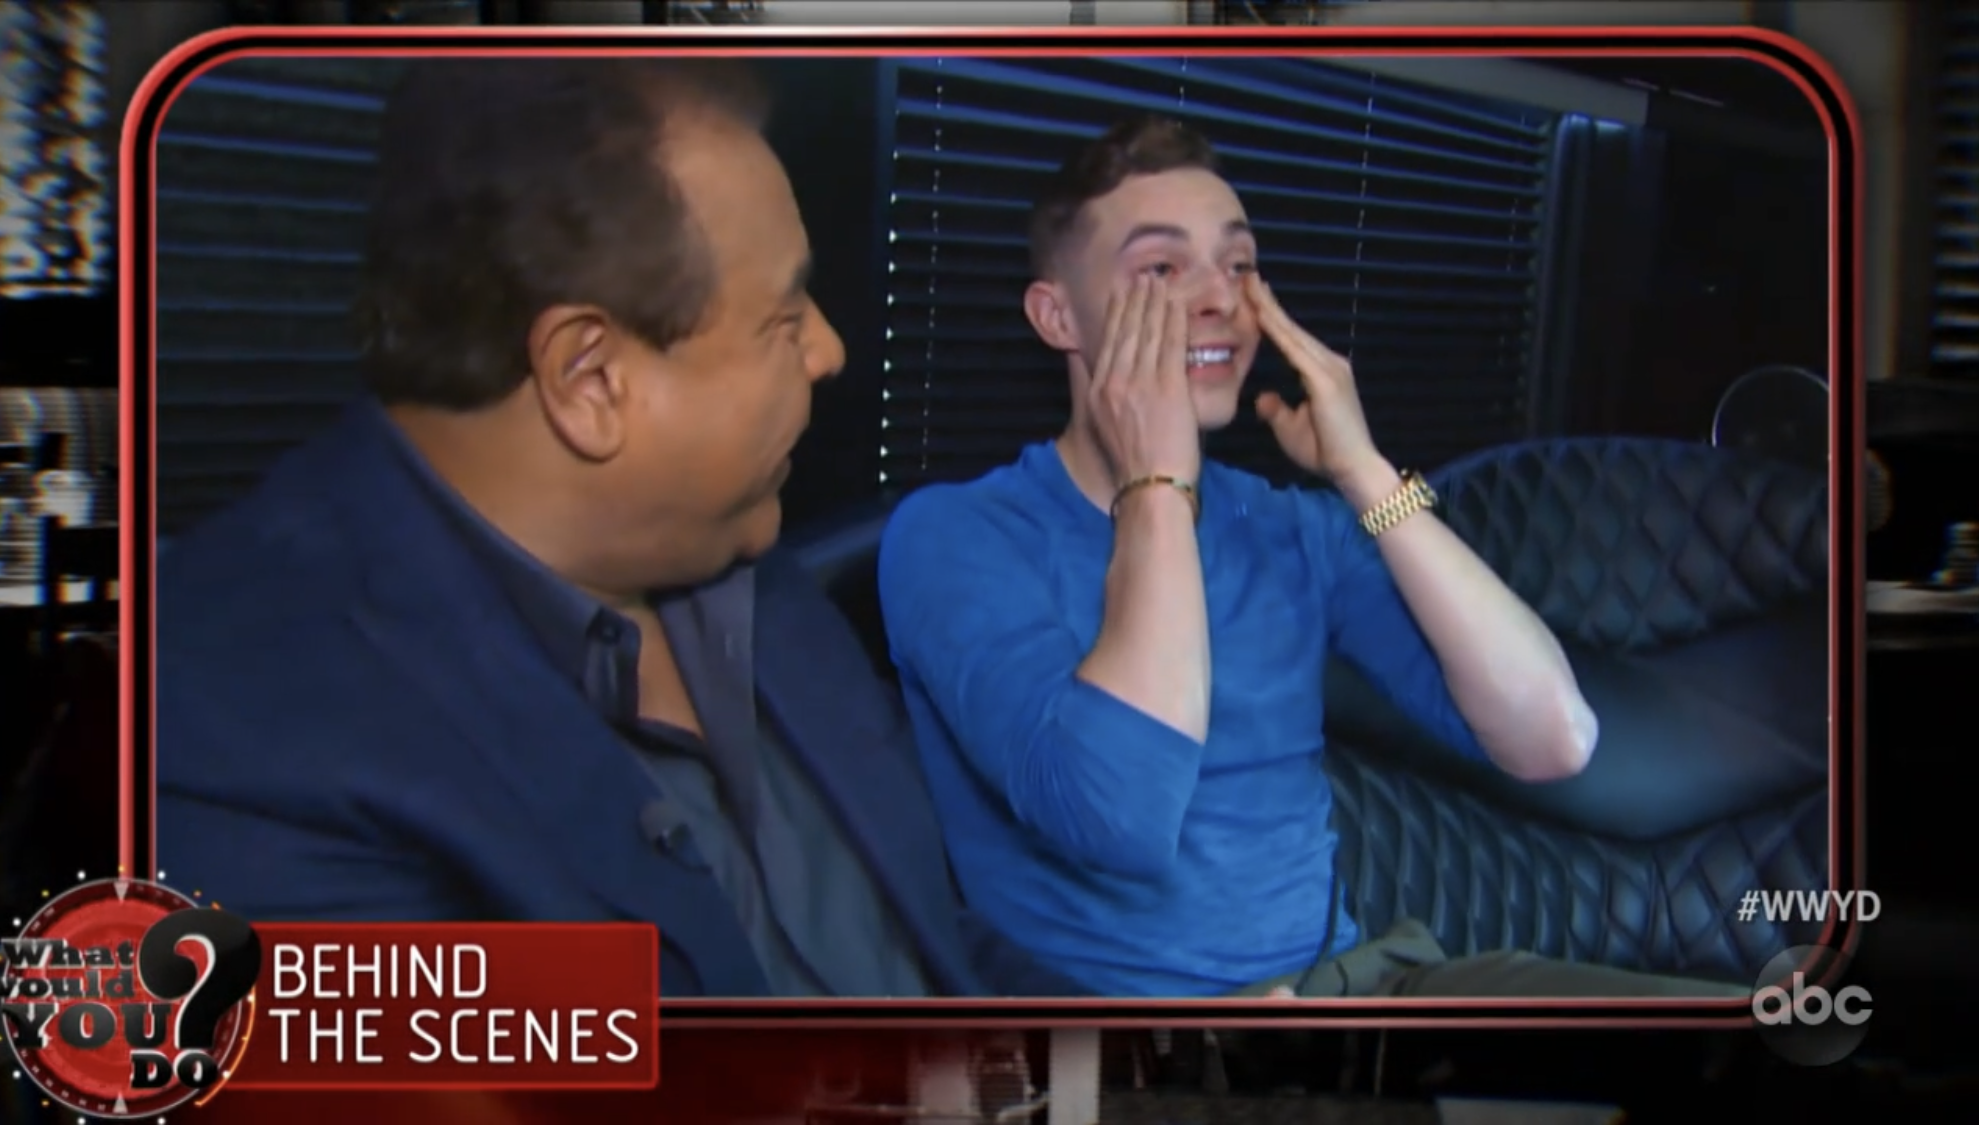 Adam Rippon was moved to tears during the segment